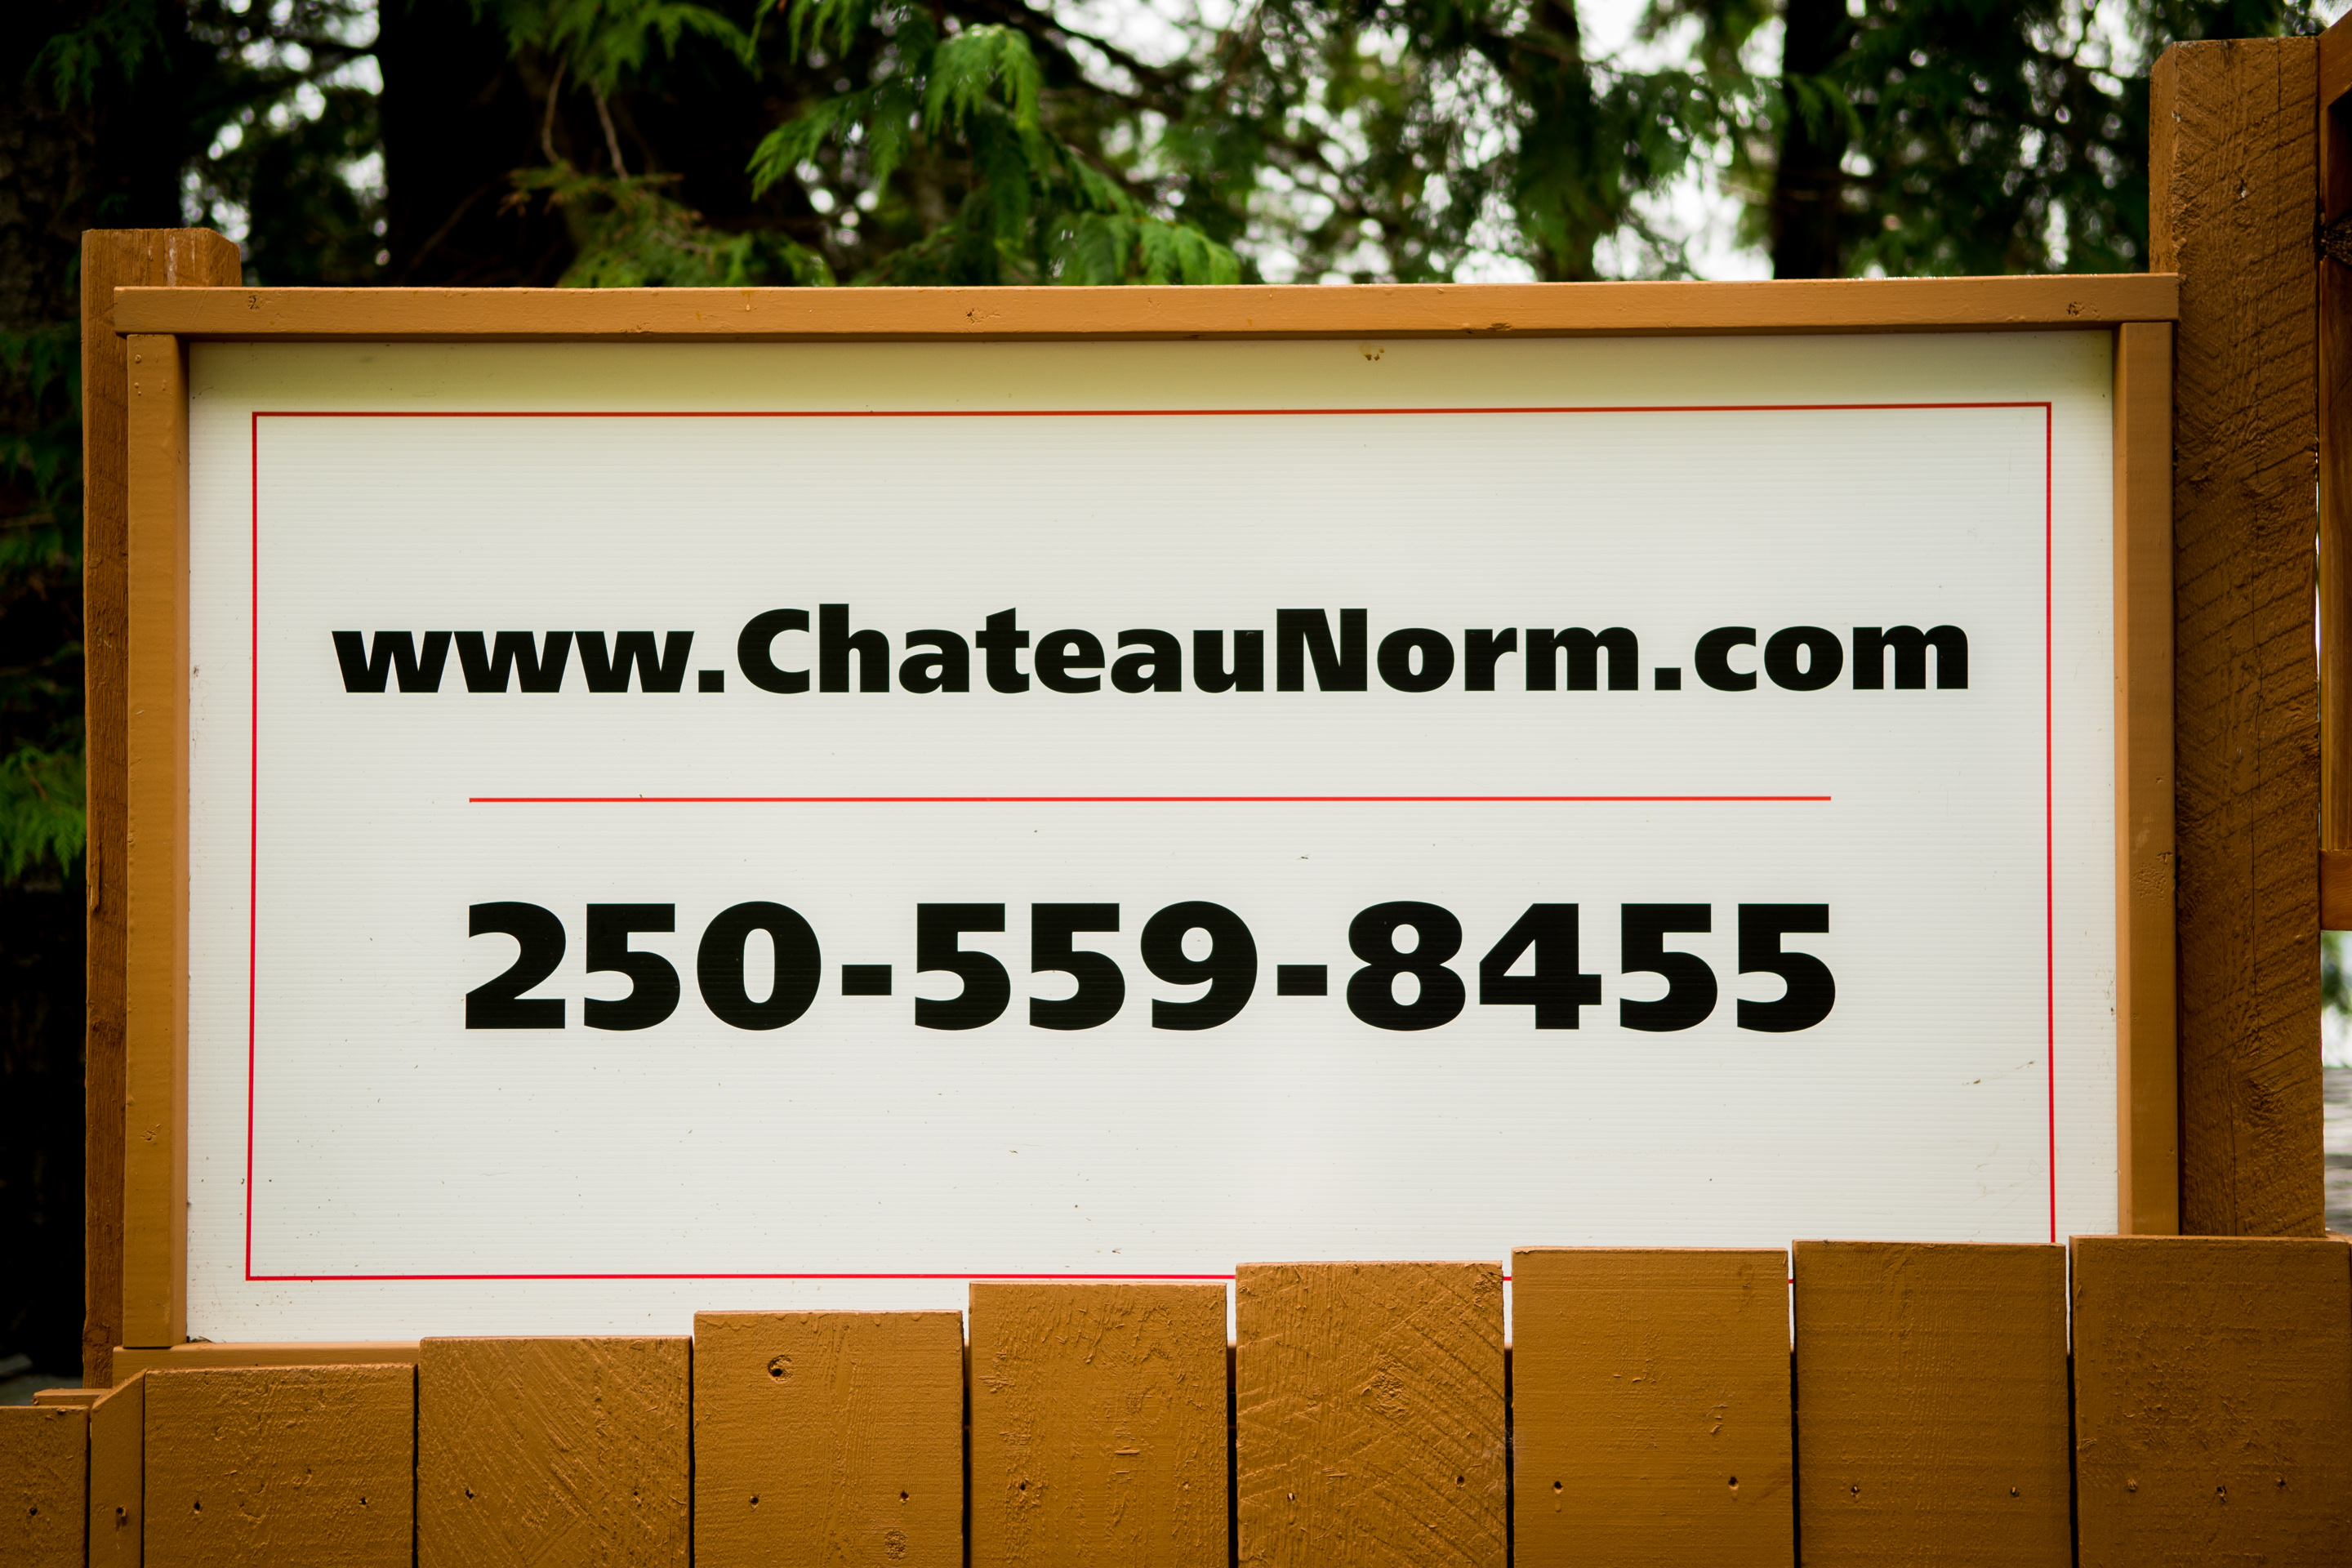 CHATEAU NORM_021